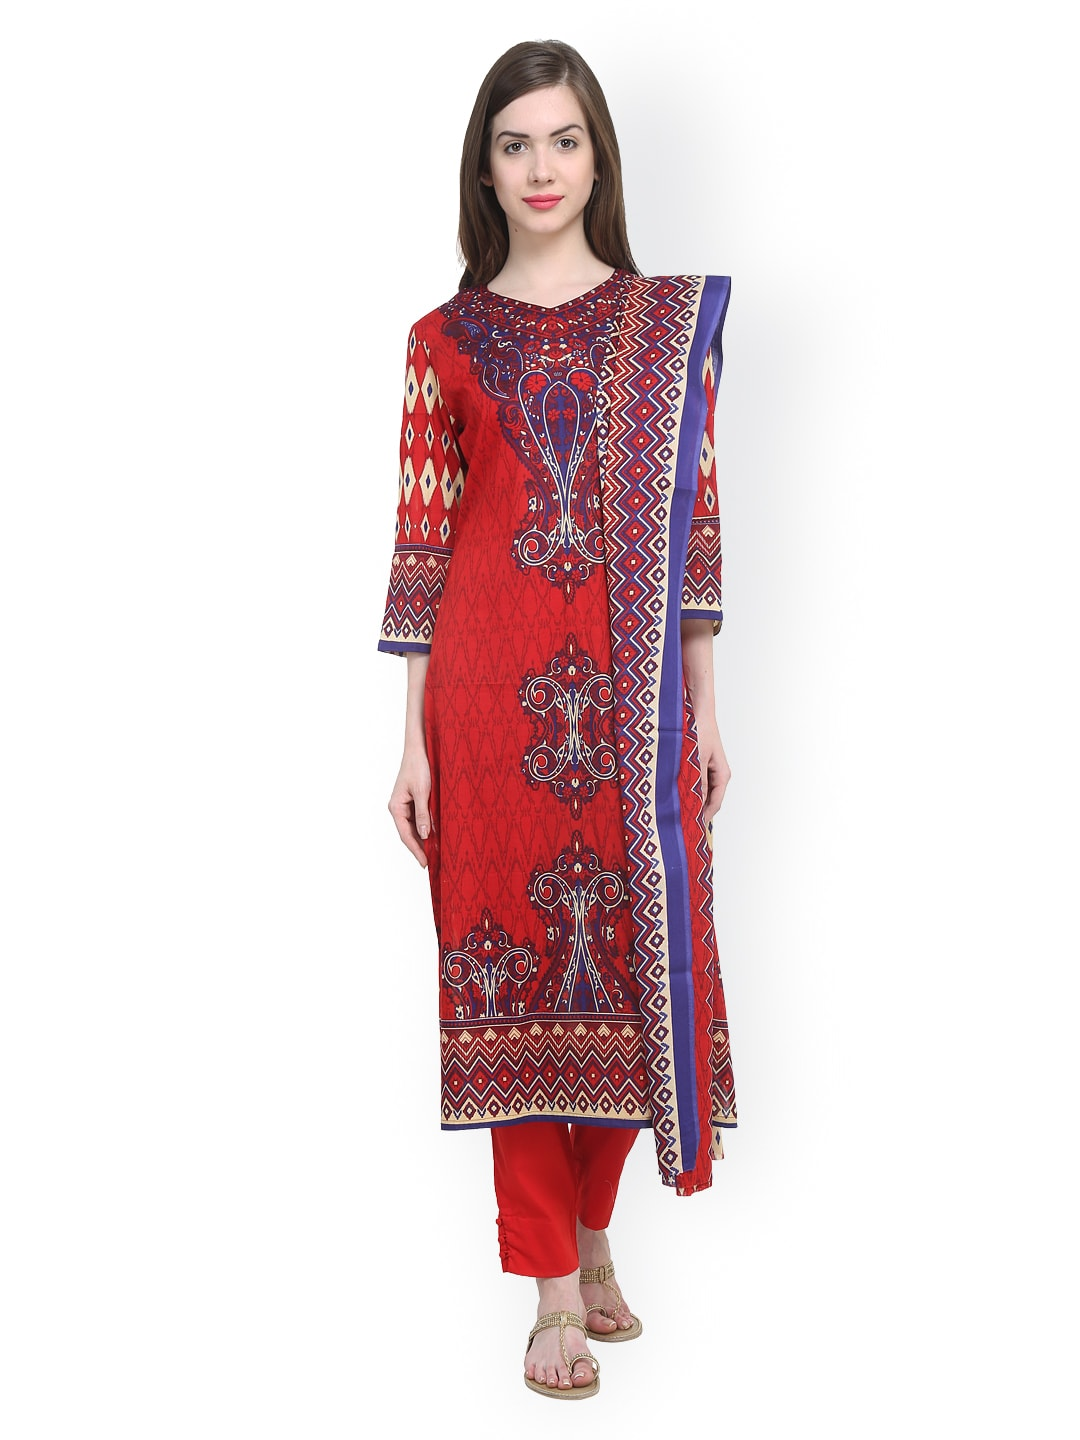 Uptown Galeria Red Printed Pakistani Cotton Lawn Unstitched Dress Material